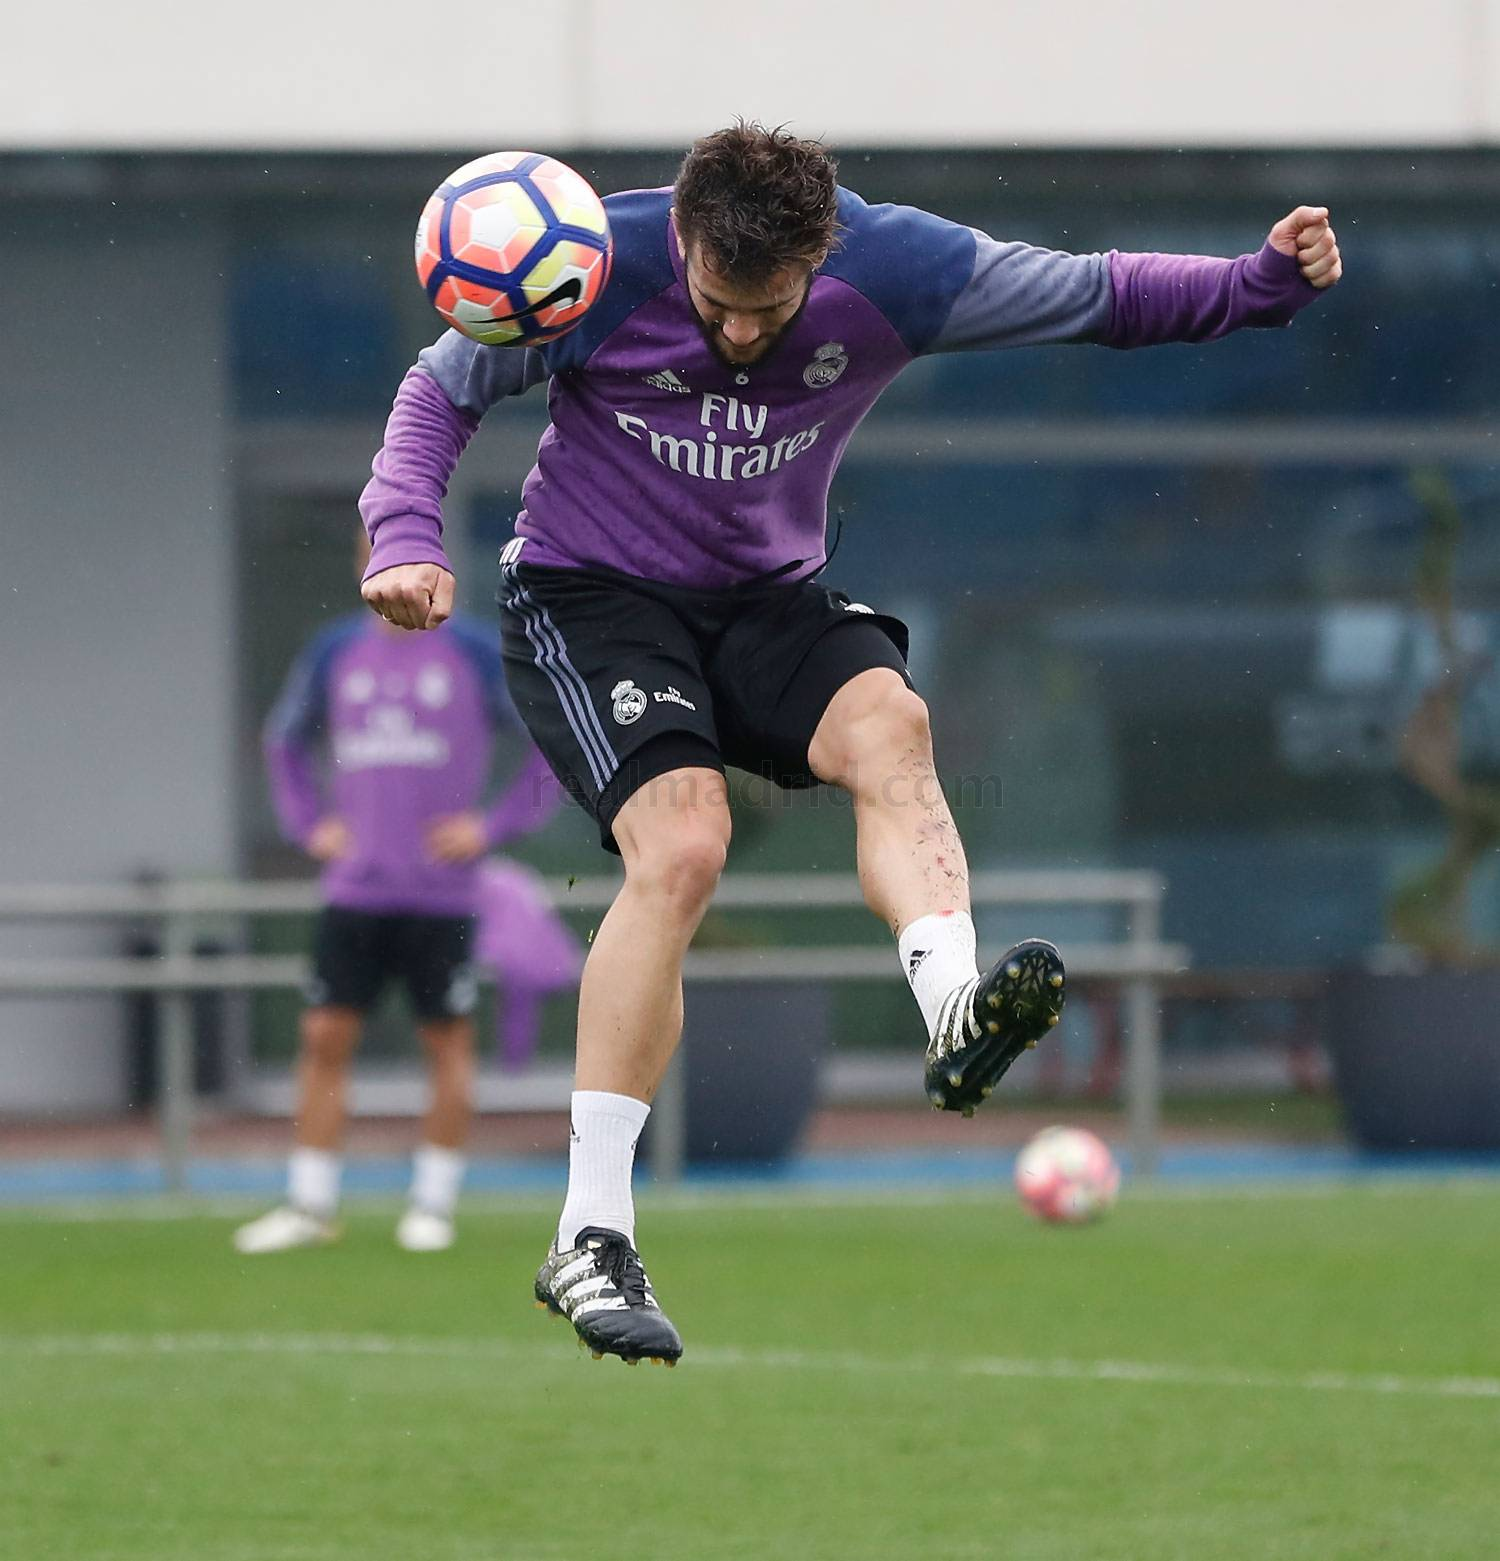 Real Madrid - Entrenamiento del Real Madrid - 22-10-2016